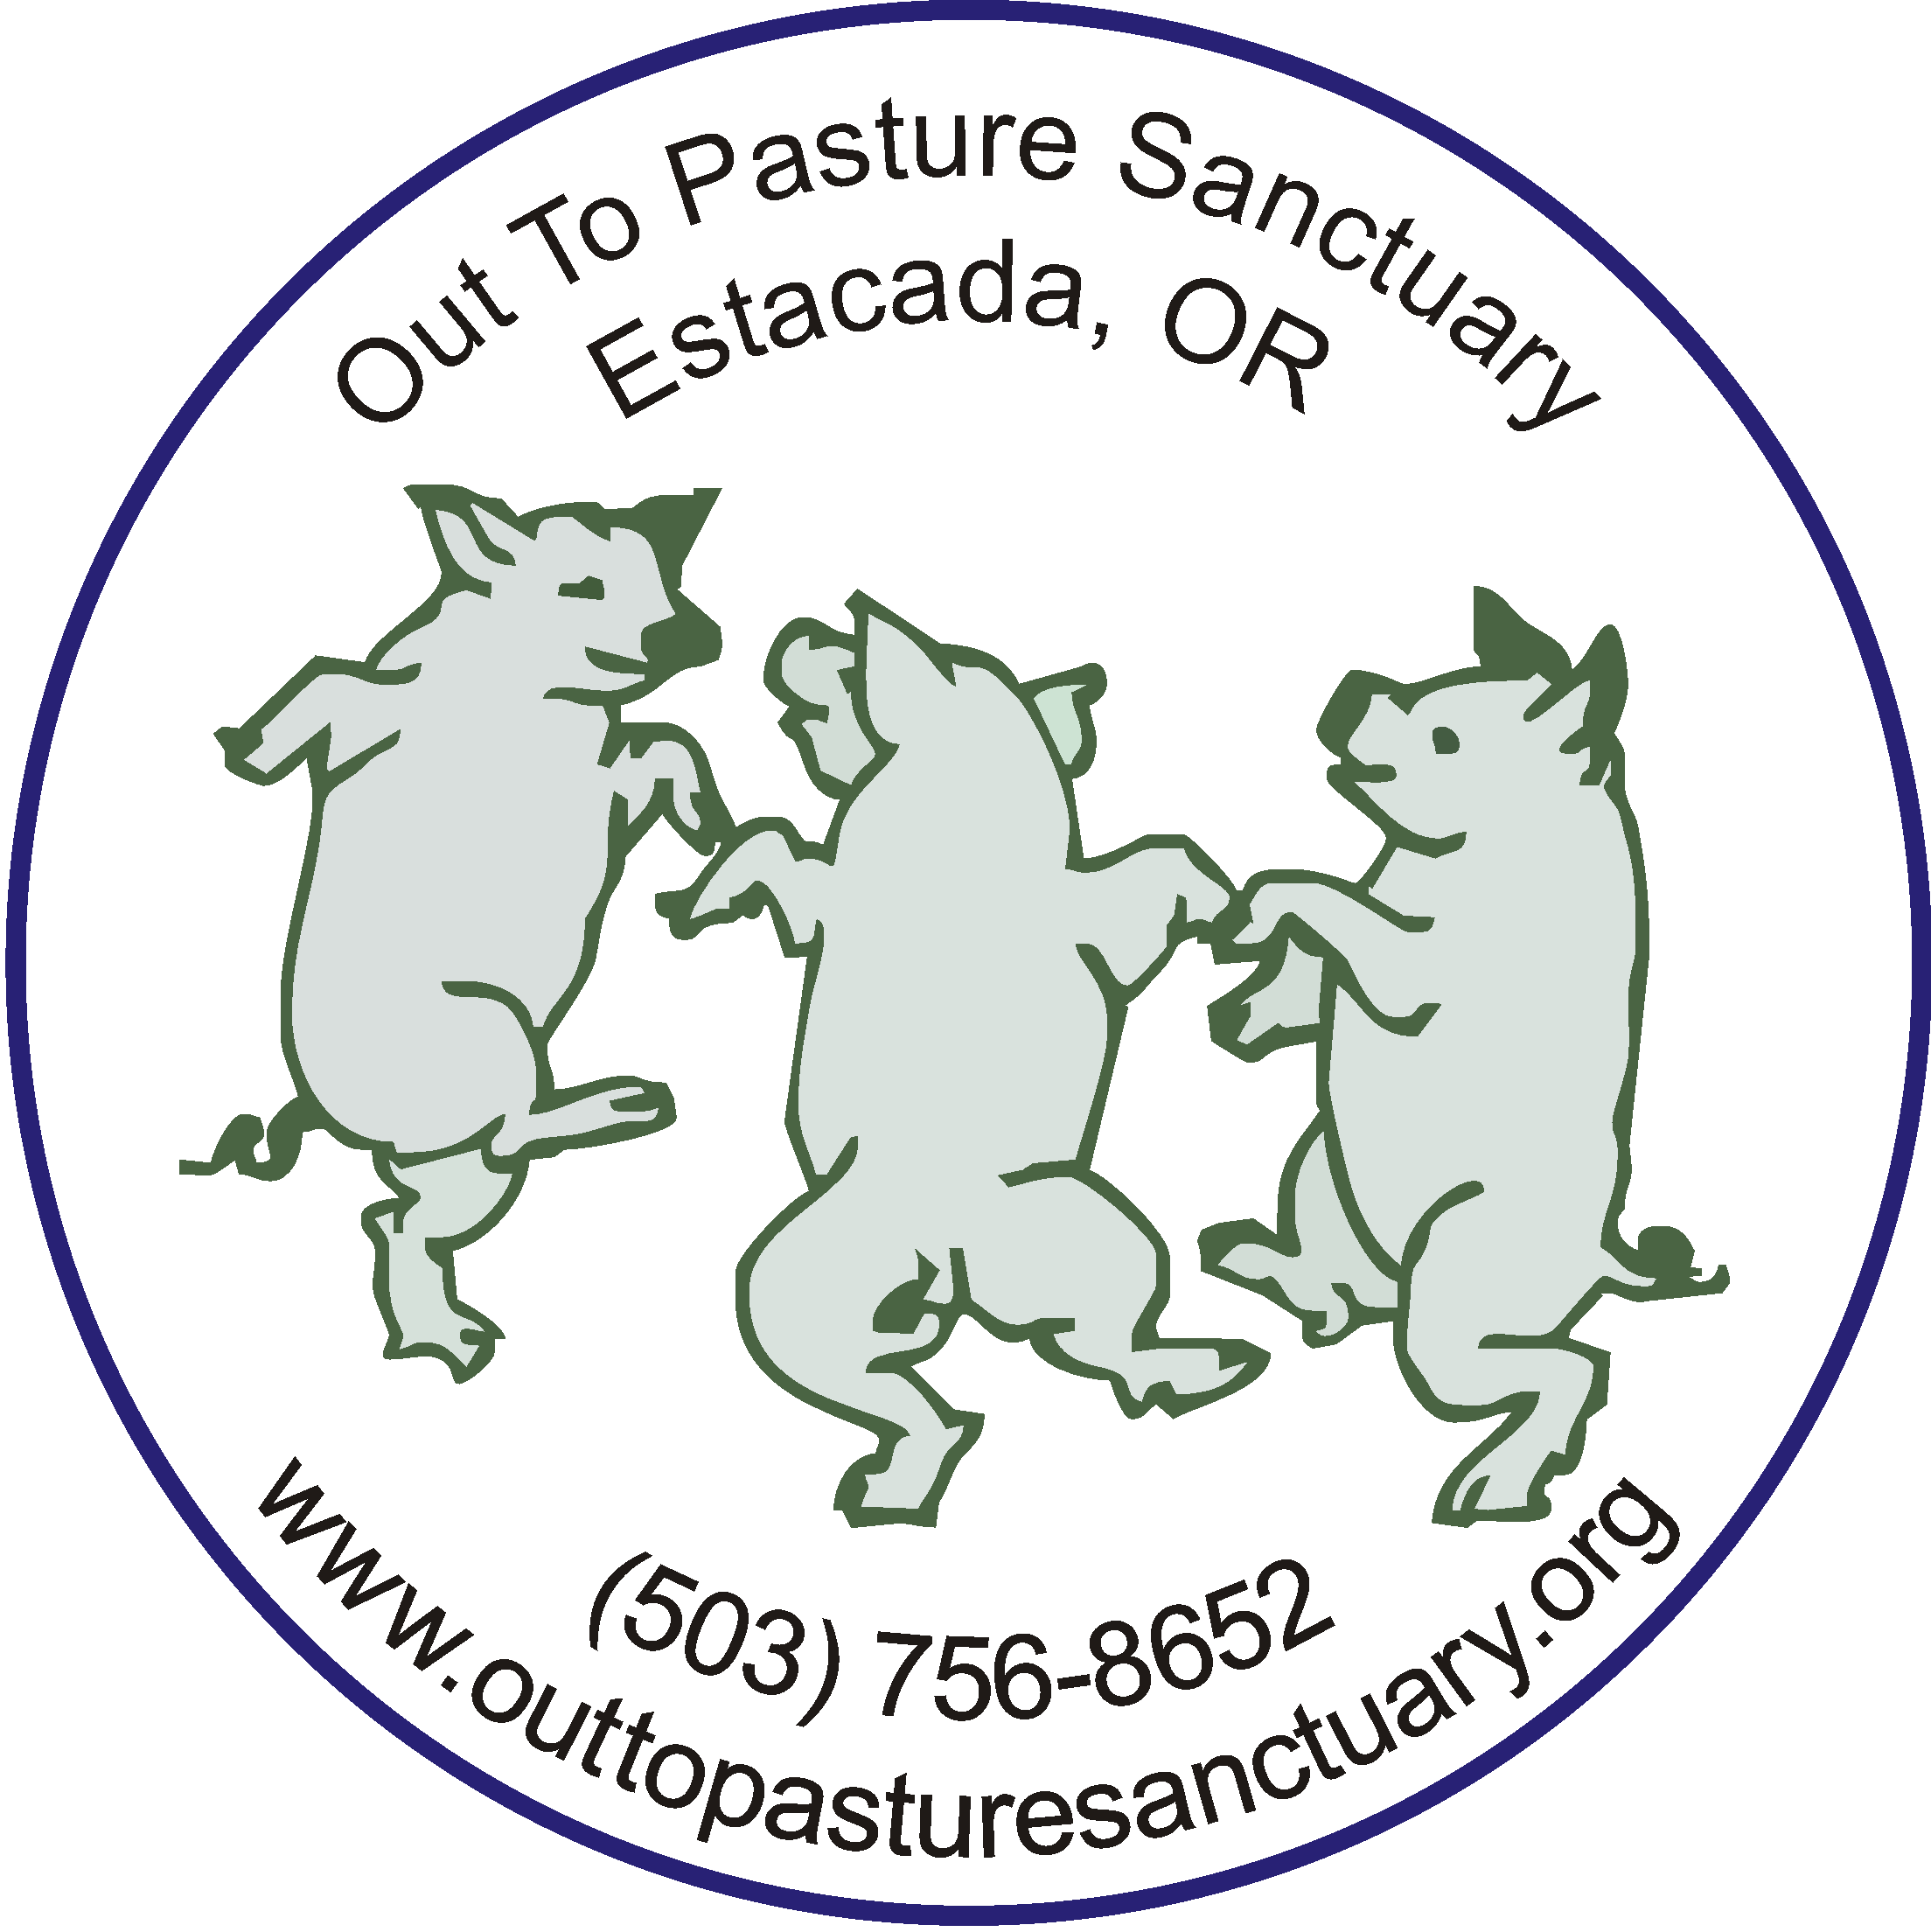 Out to Pasture logo